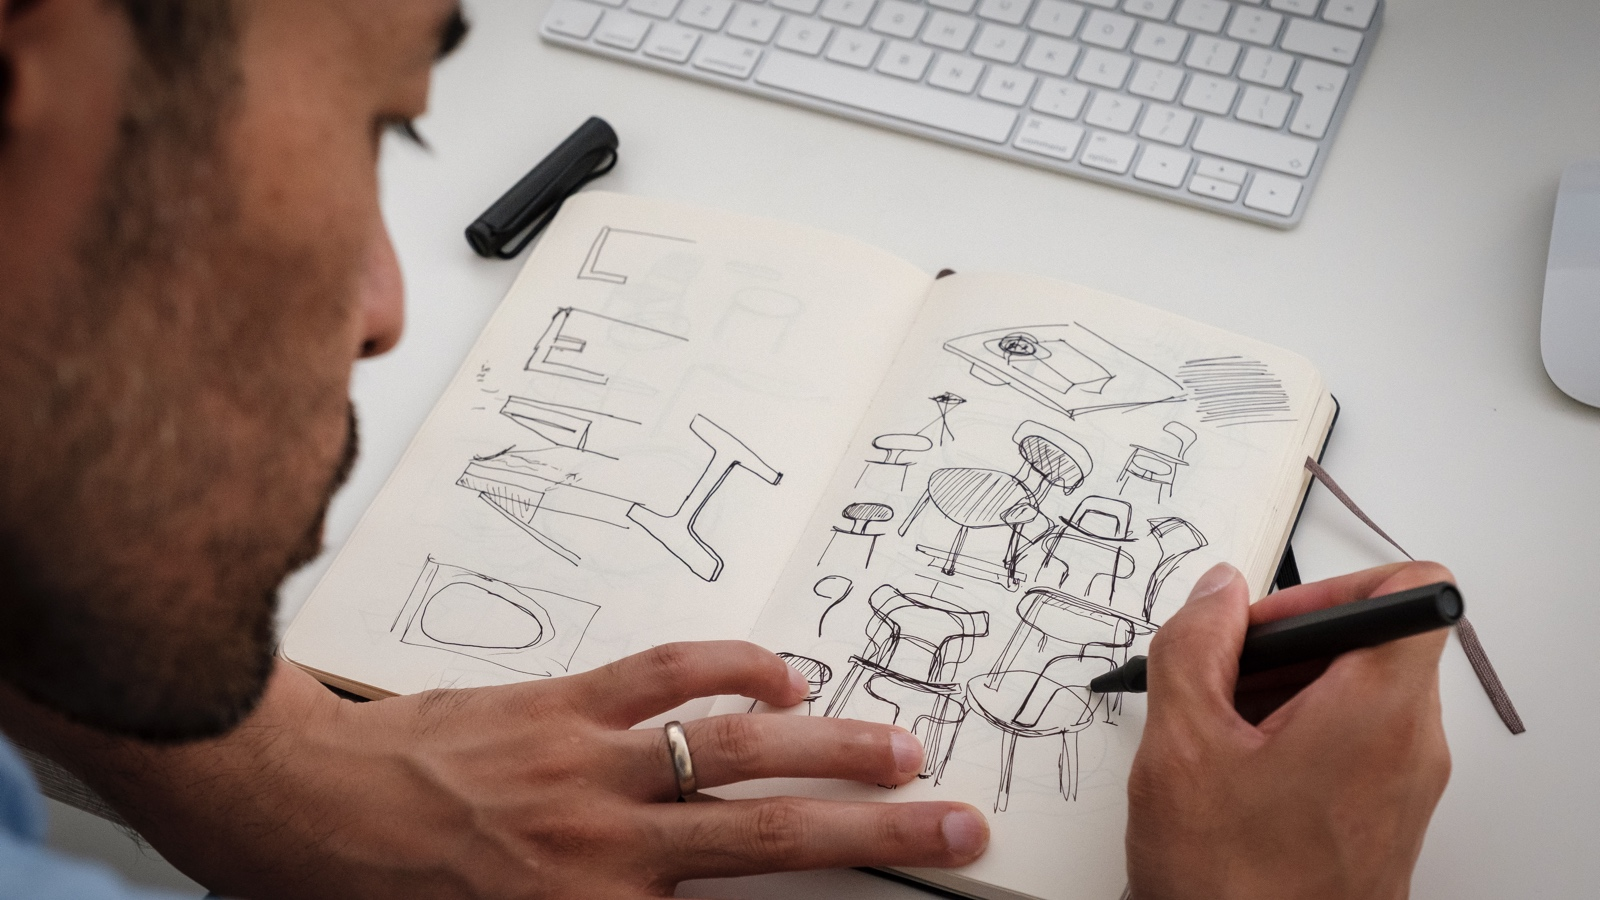 Japanese-born designer Keiji Takeuchi sits at the desk in his home studio in Milan, Italy and sketches ideas for a chair design in a notebook.